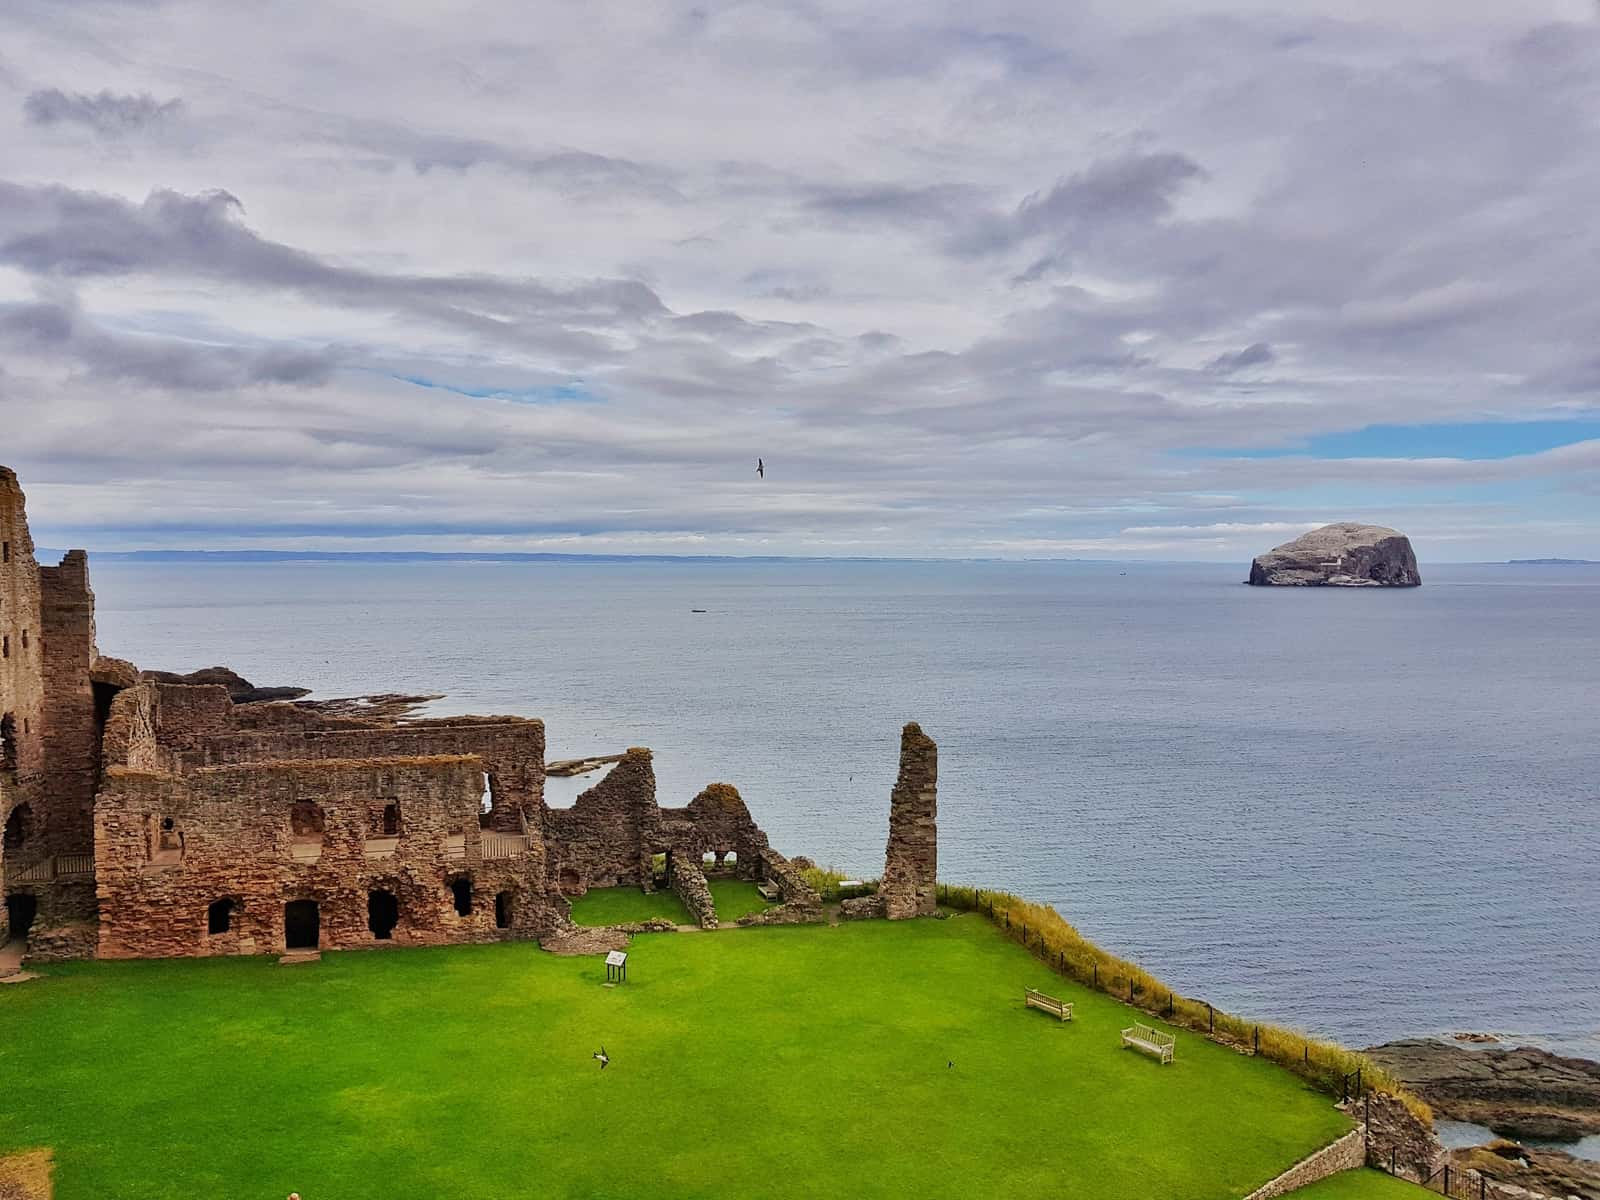 Tantallon Castle and Seacliff Beach East Lothian Scotland - view of bass rock from tower